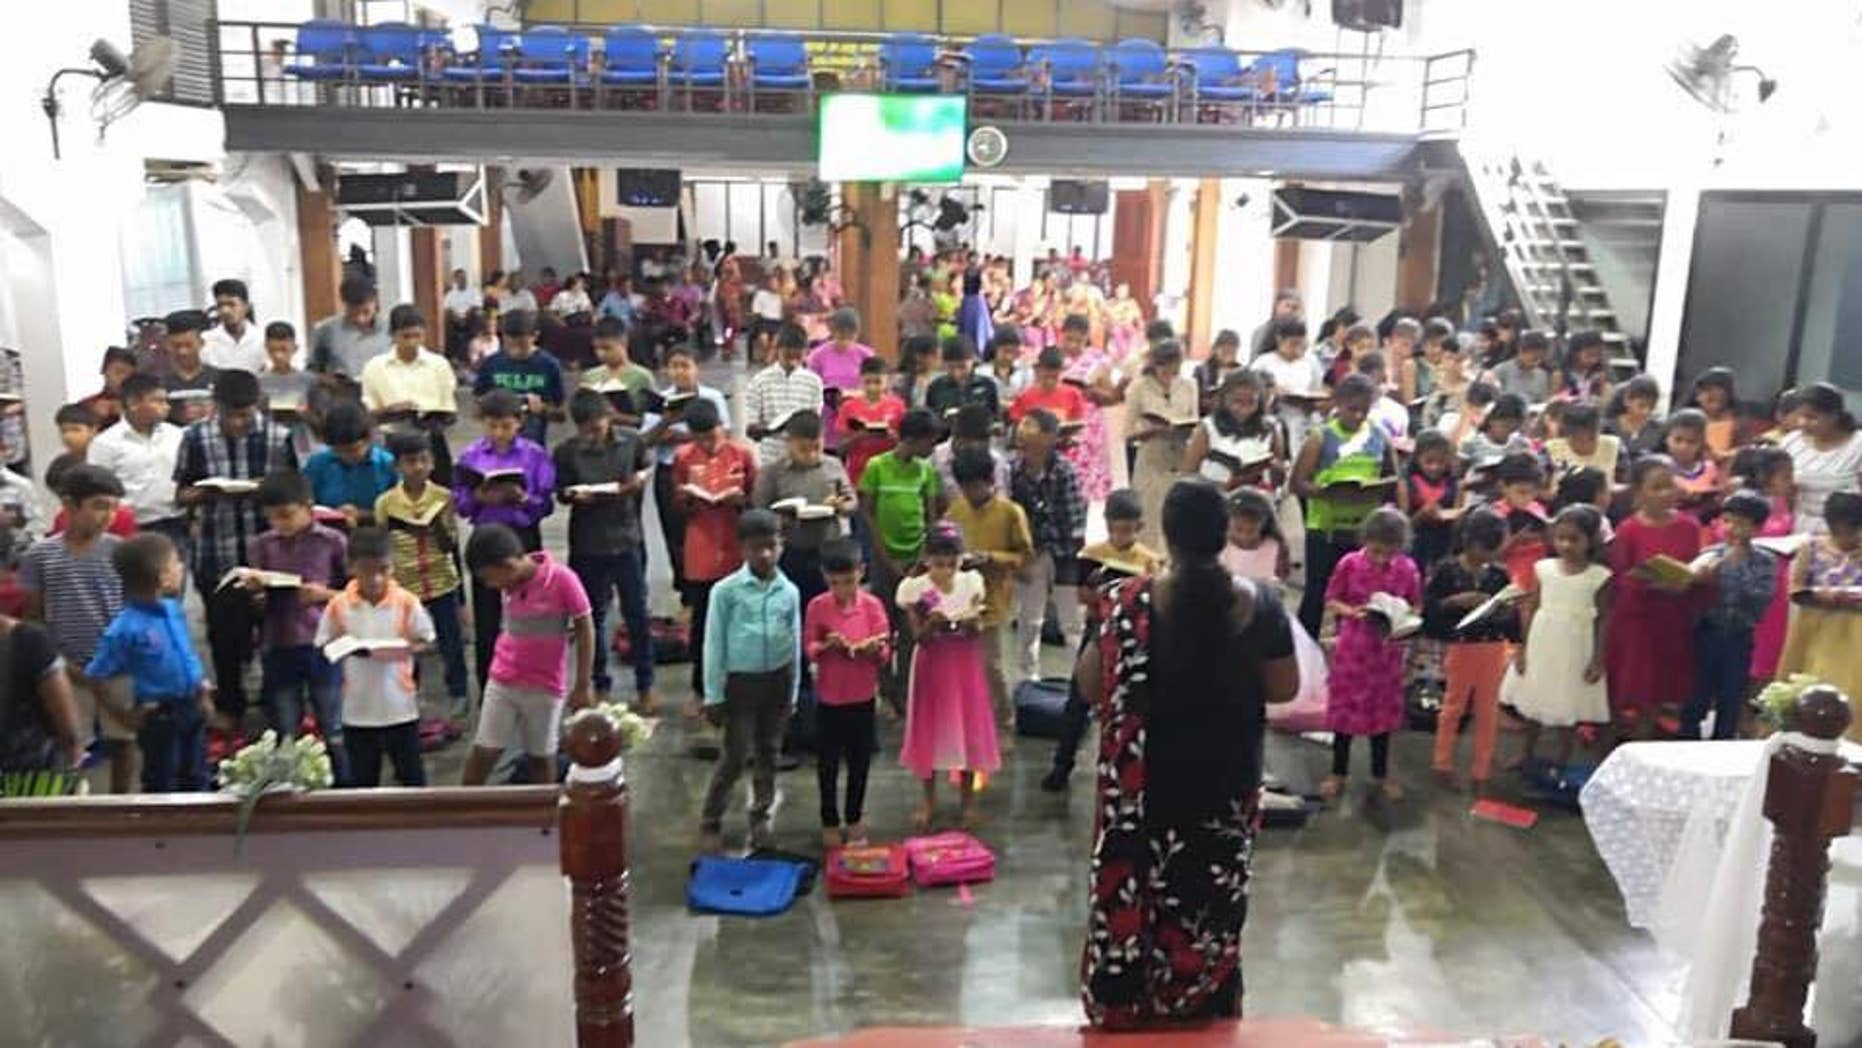 Photos of the children at Zion Church in Sunday school minutes before the radical Islamic terrorist detonated a bomb killing at least 22 kids Easter Sunday.